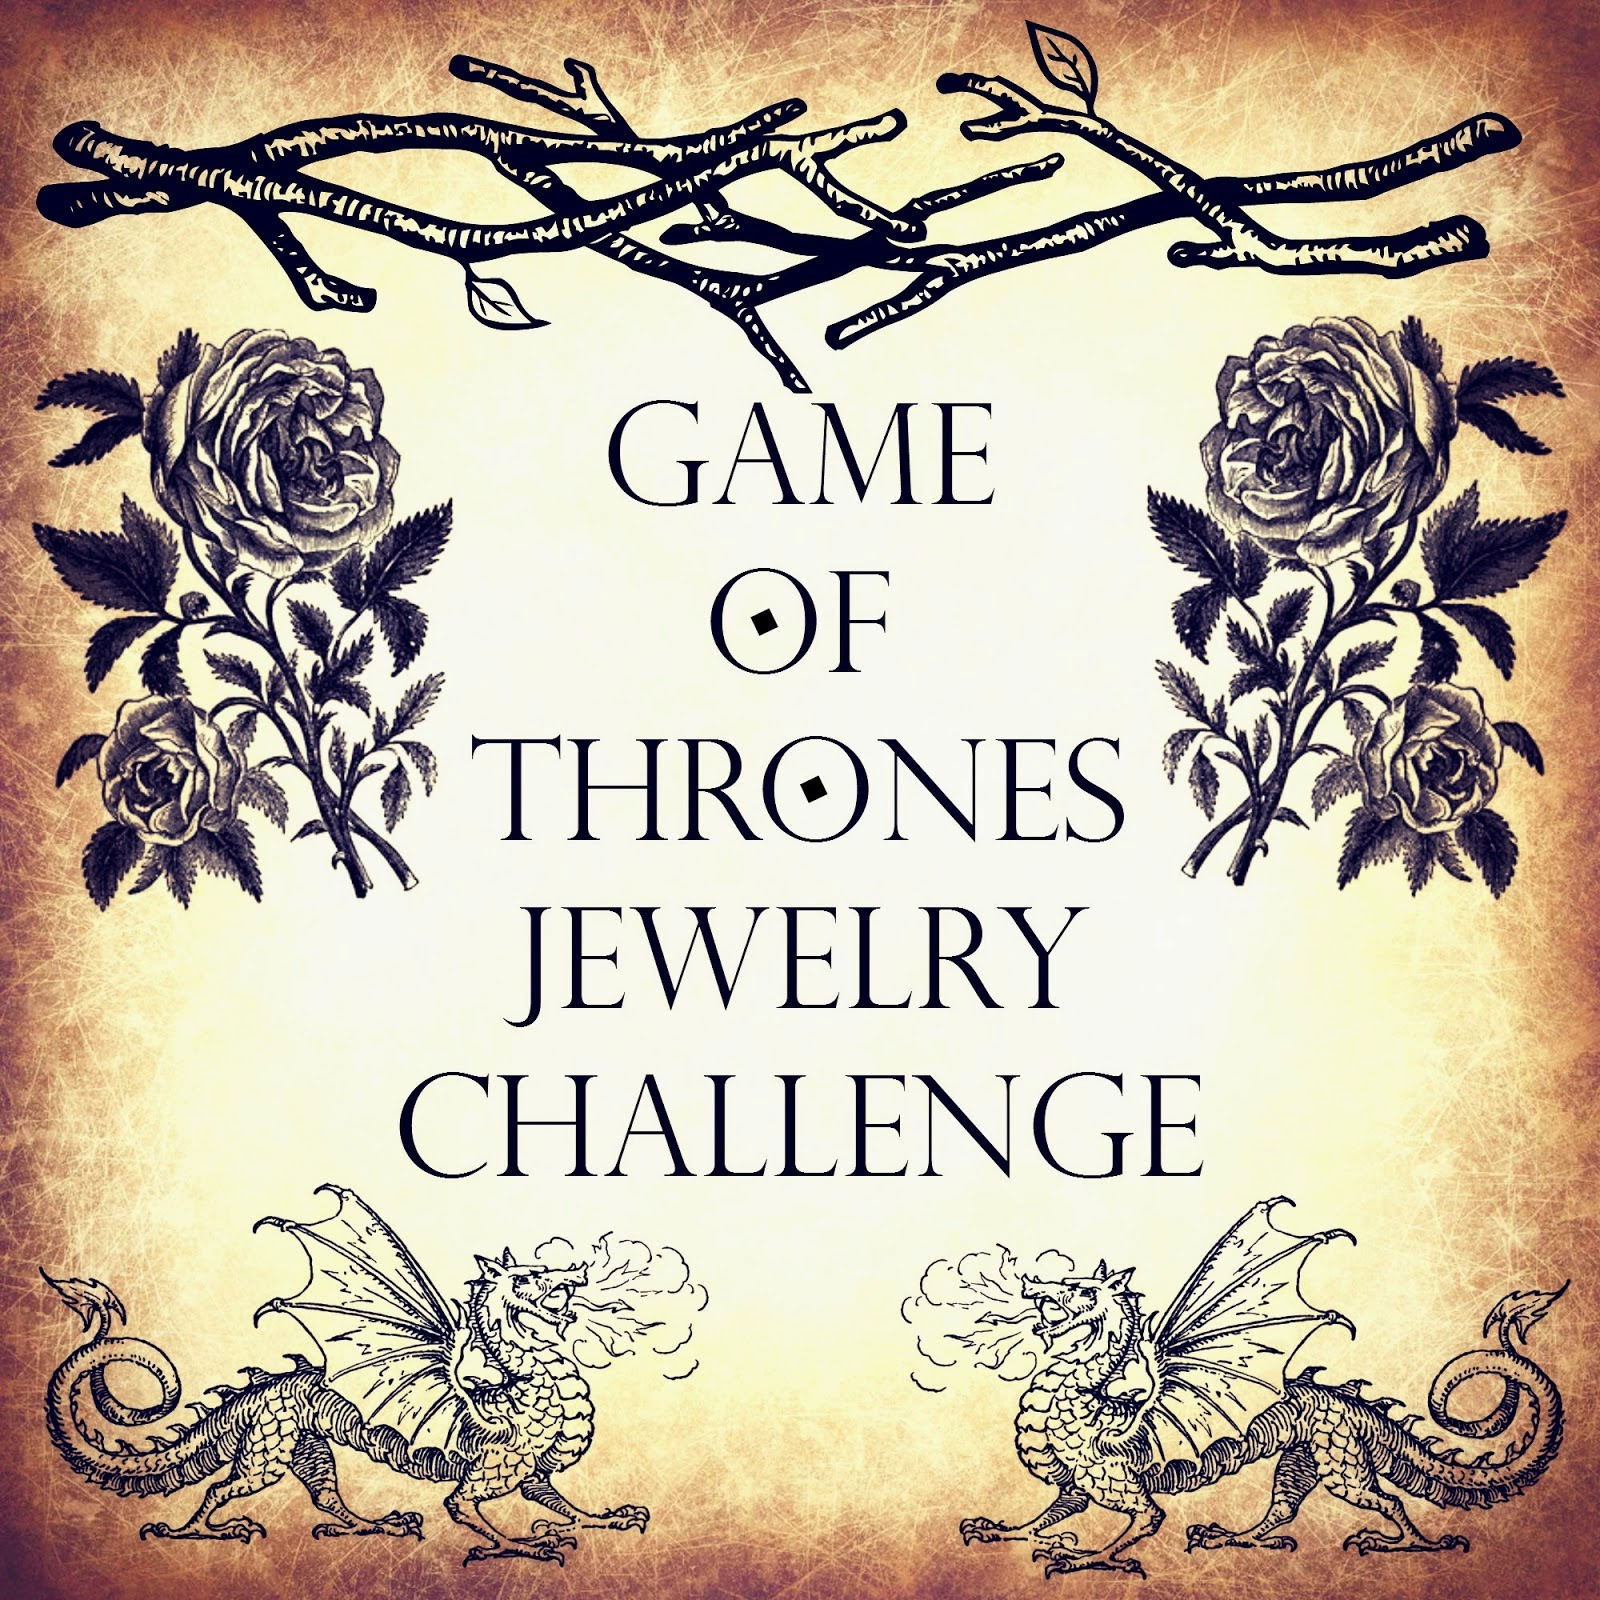 Game of Thrones Jewelry Challenge